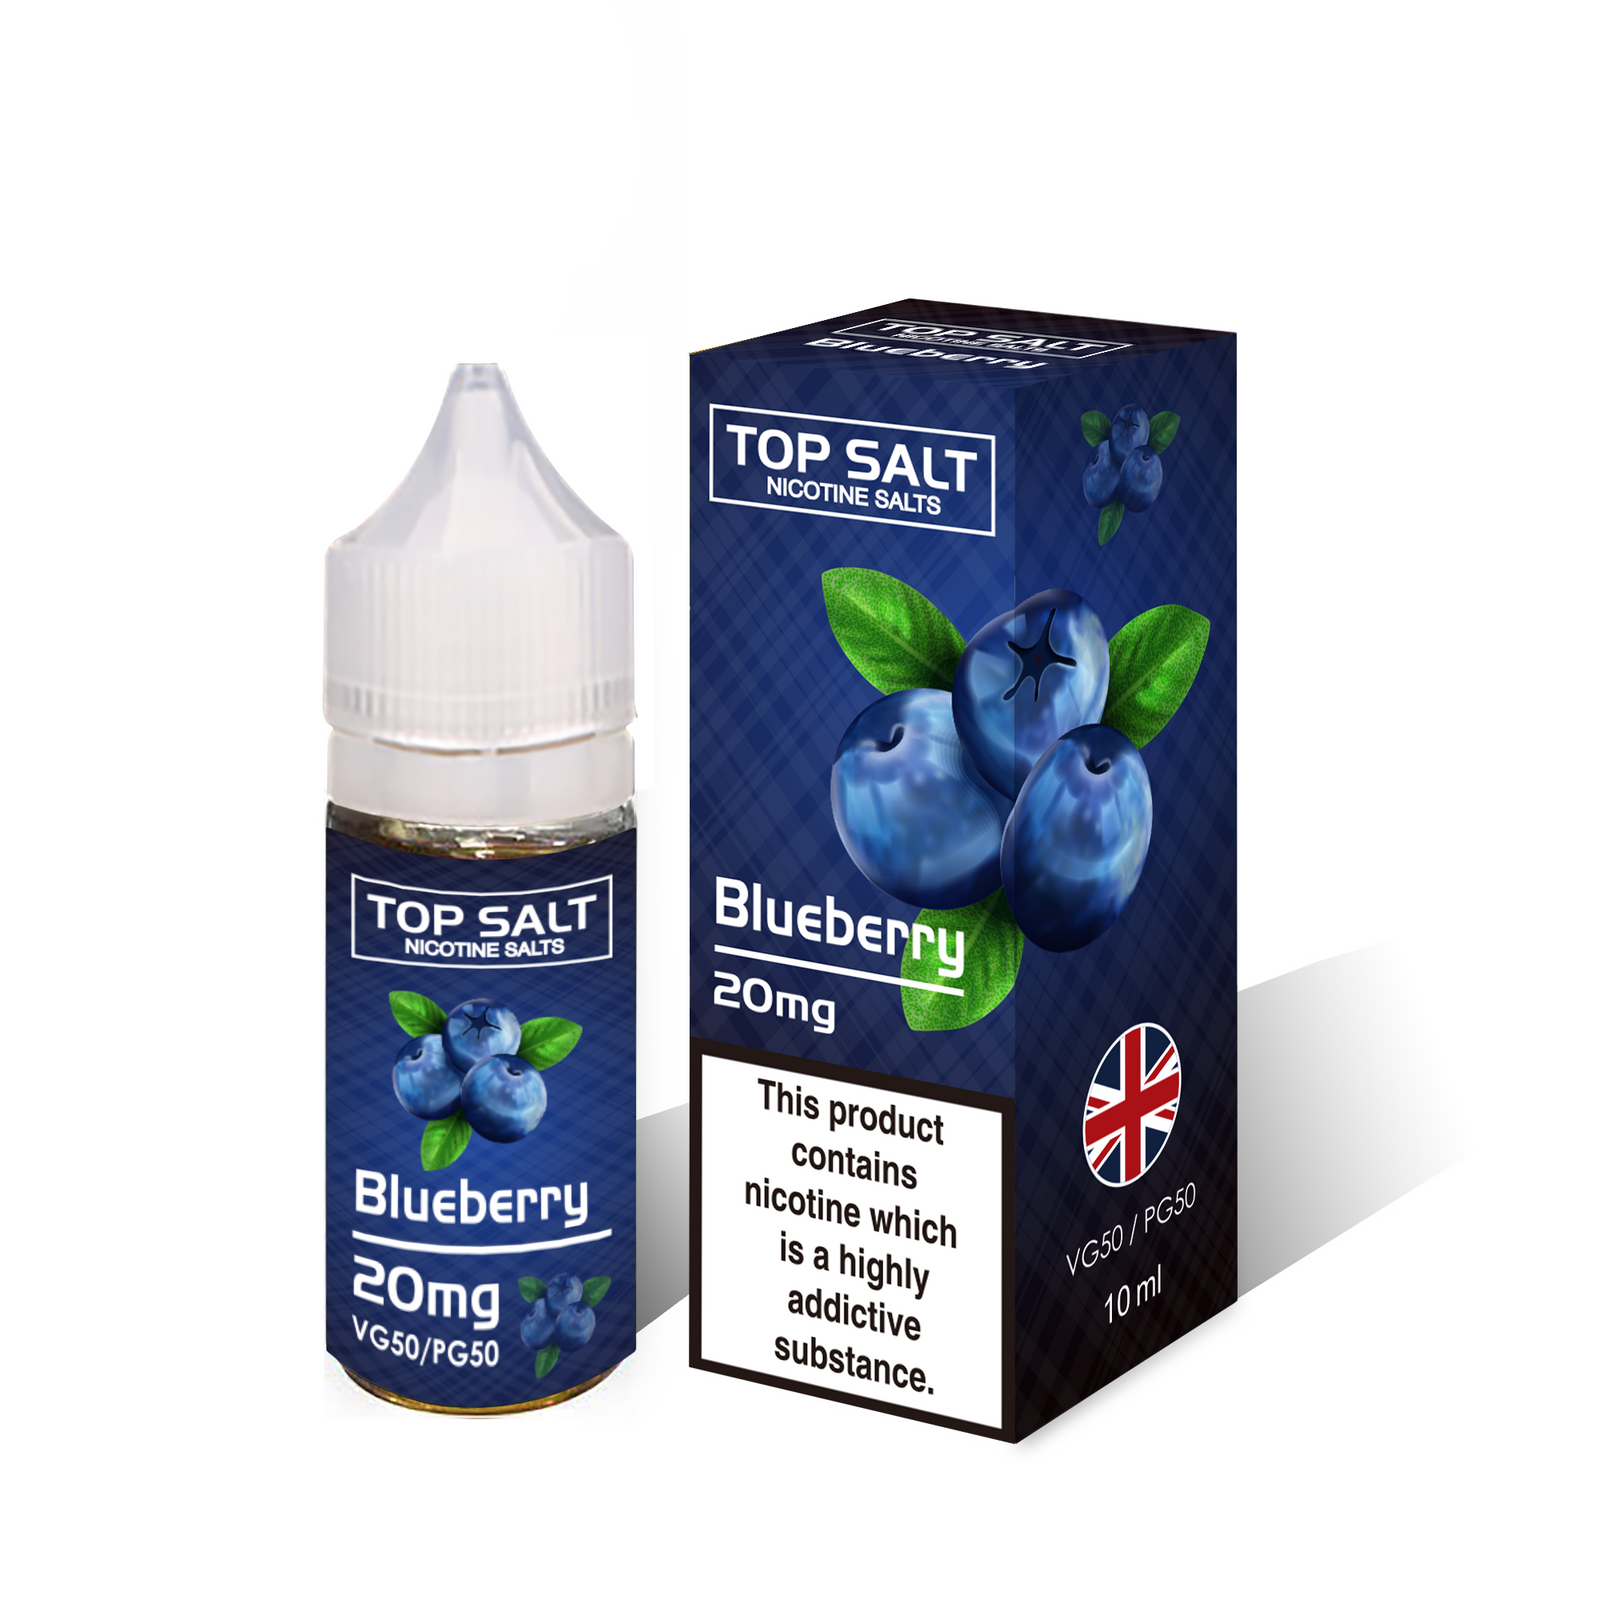 Blueberry nic salt